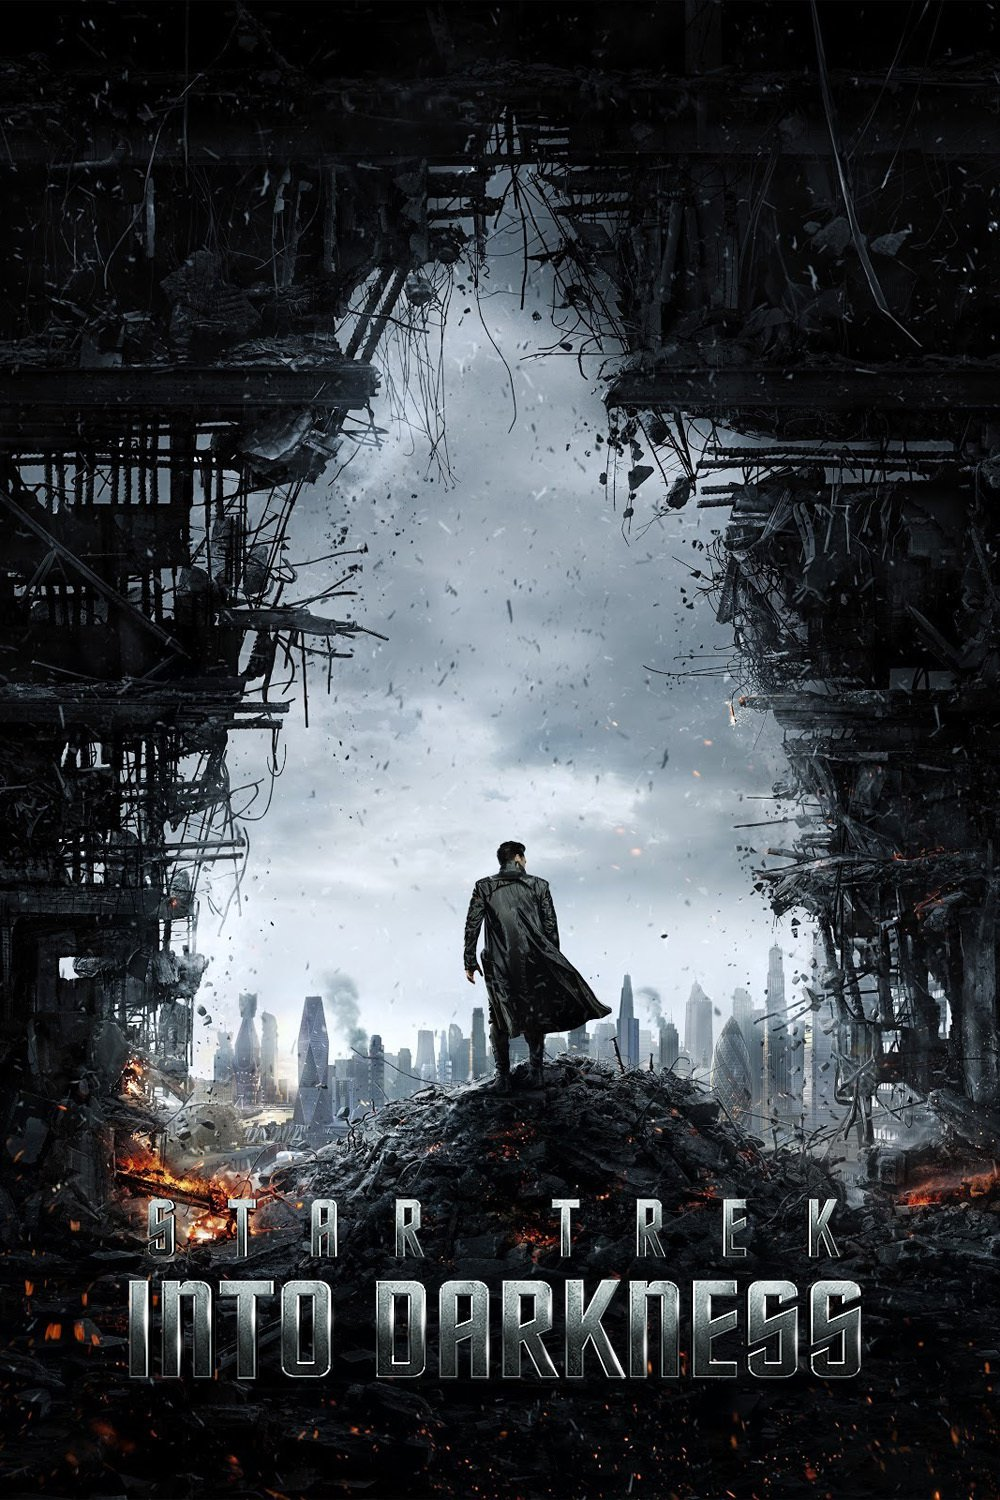 Star Trek Into Darkness, 2013